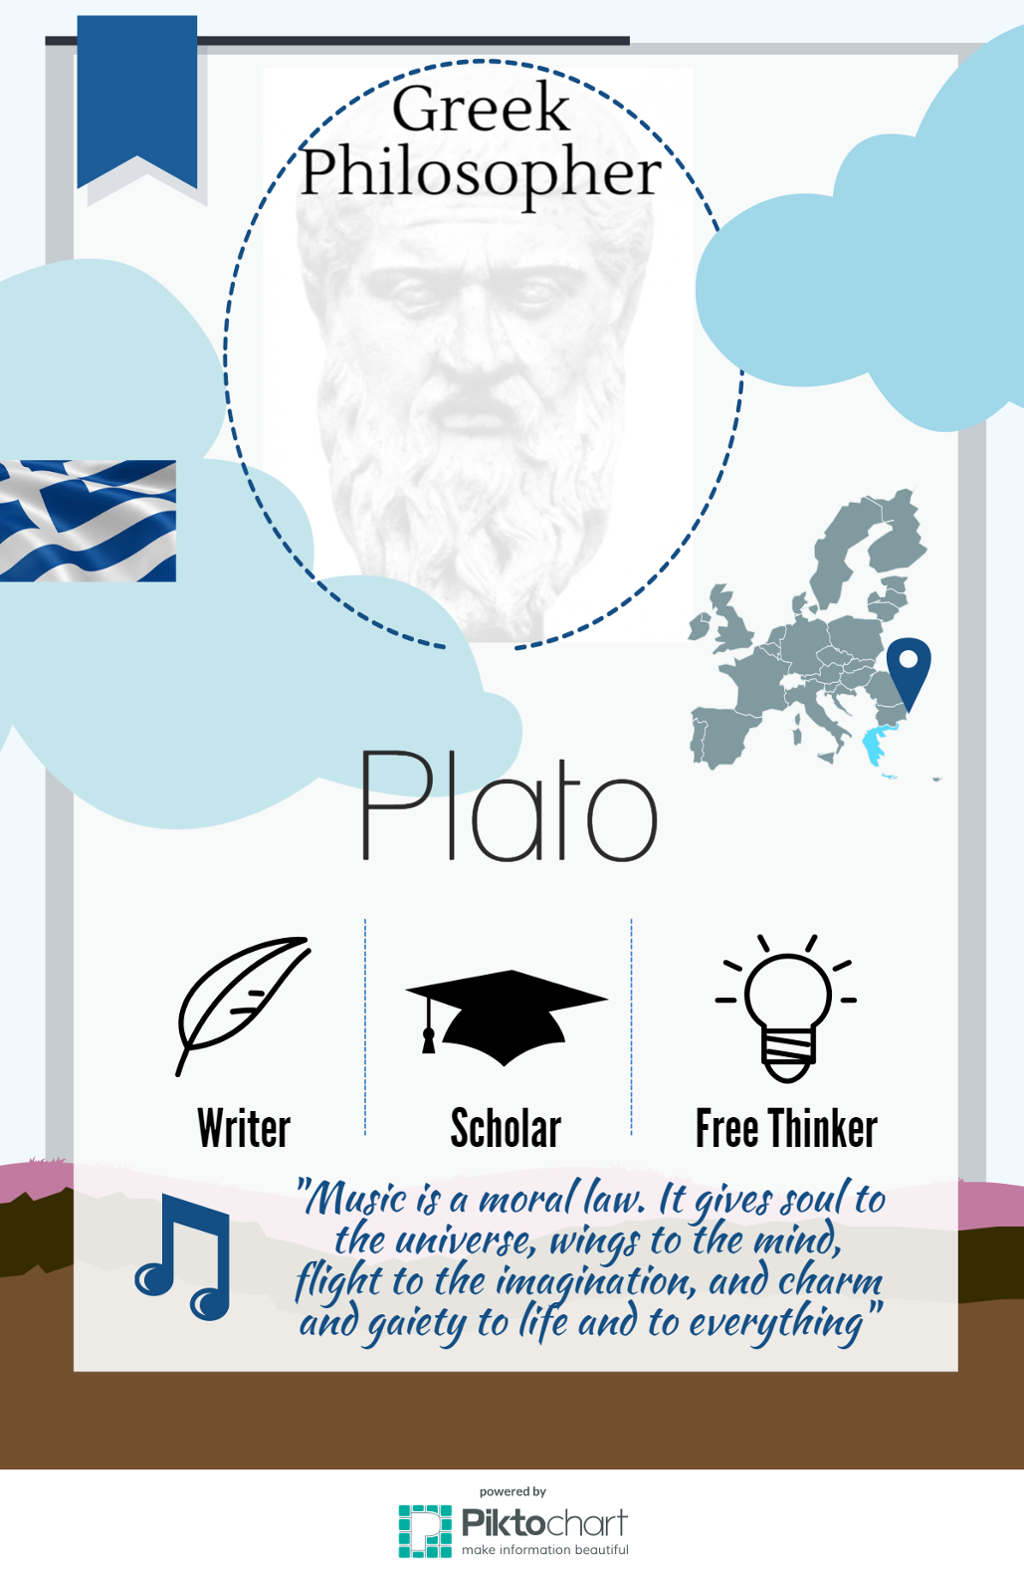 Plato Phaedo  Internet Encyclopedia of Philosophy